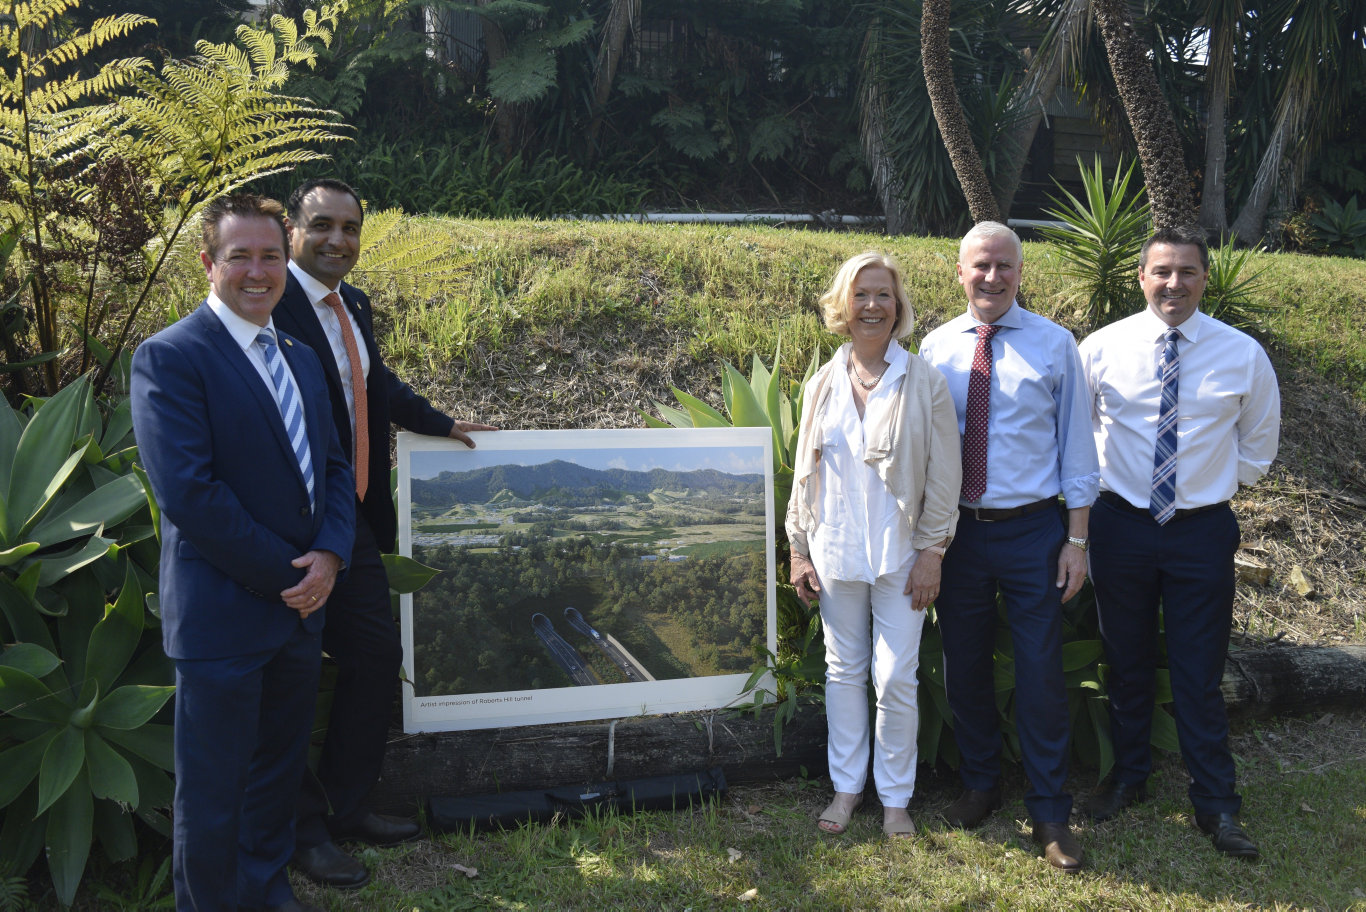 Paul Toole, Gurmesh Singh, Denise Kinight, Michael McCormack and Pat Conaghan with an image of the proposed bypass.